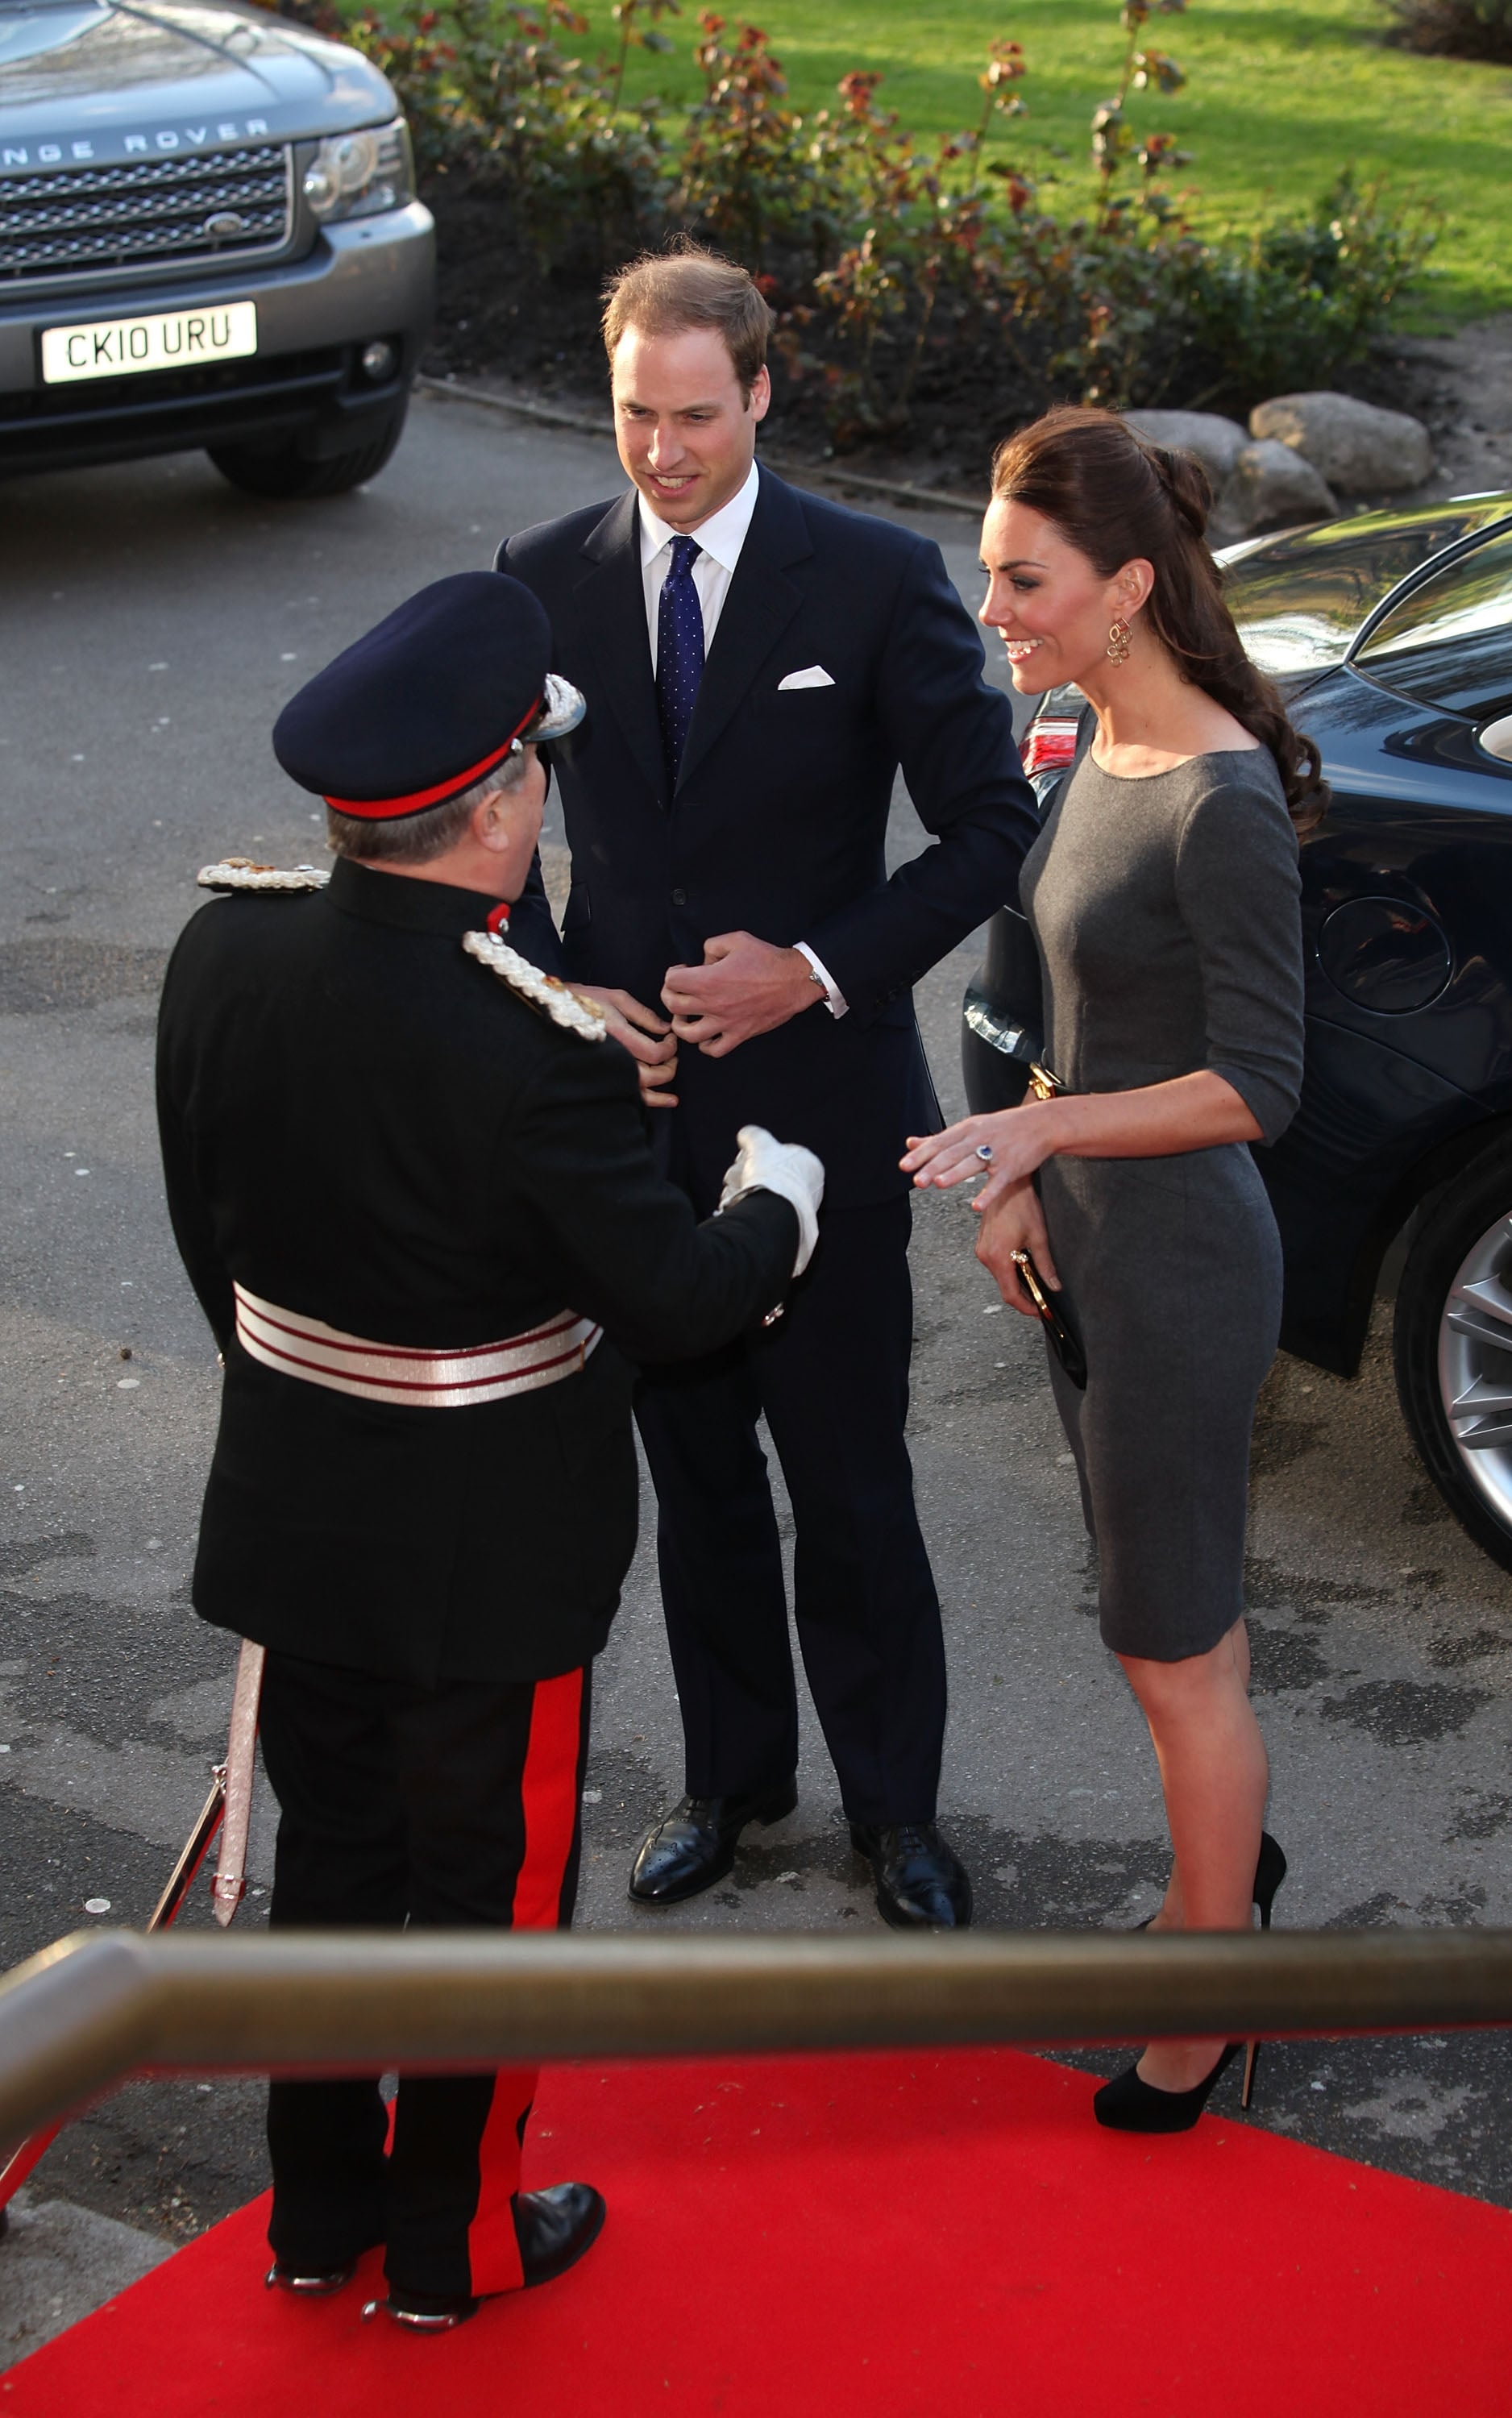 Kate Middleton and Prince William were greeted on the red carpet.